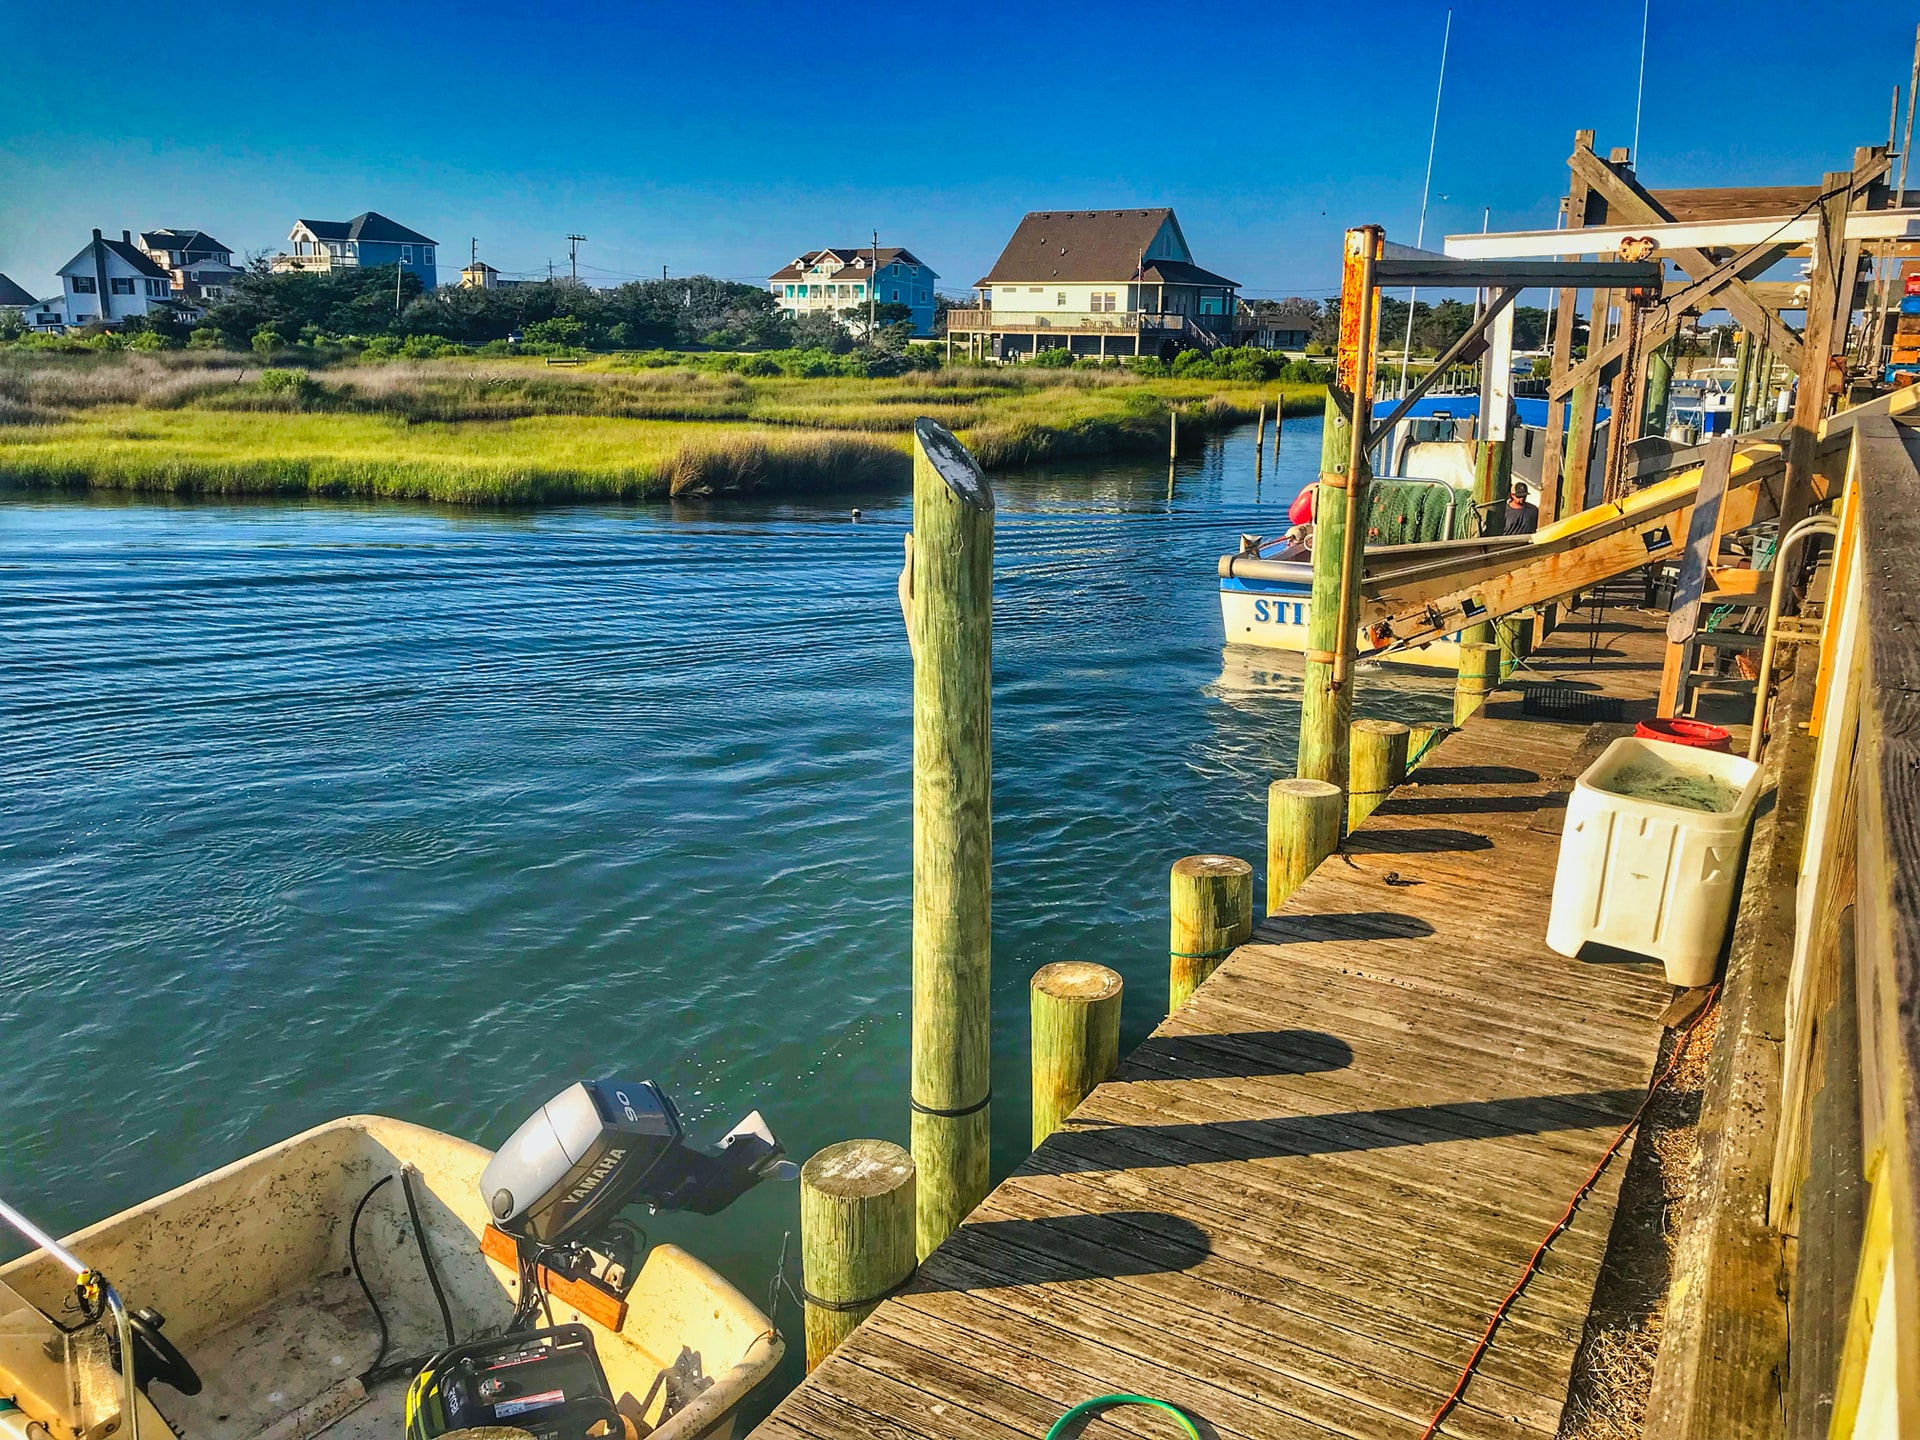 Hatteras in the Outer Banks of North Carolina, a stop along one scenic byway